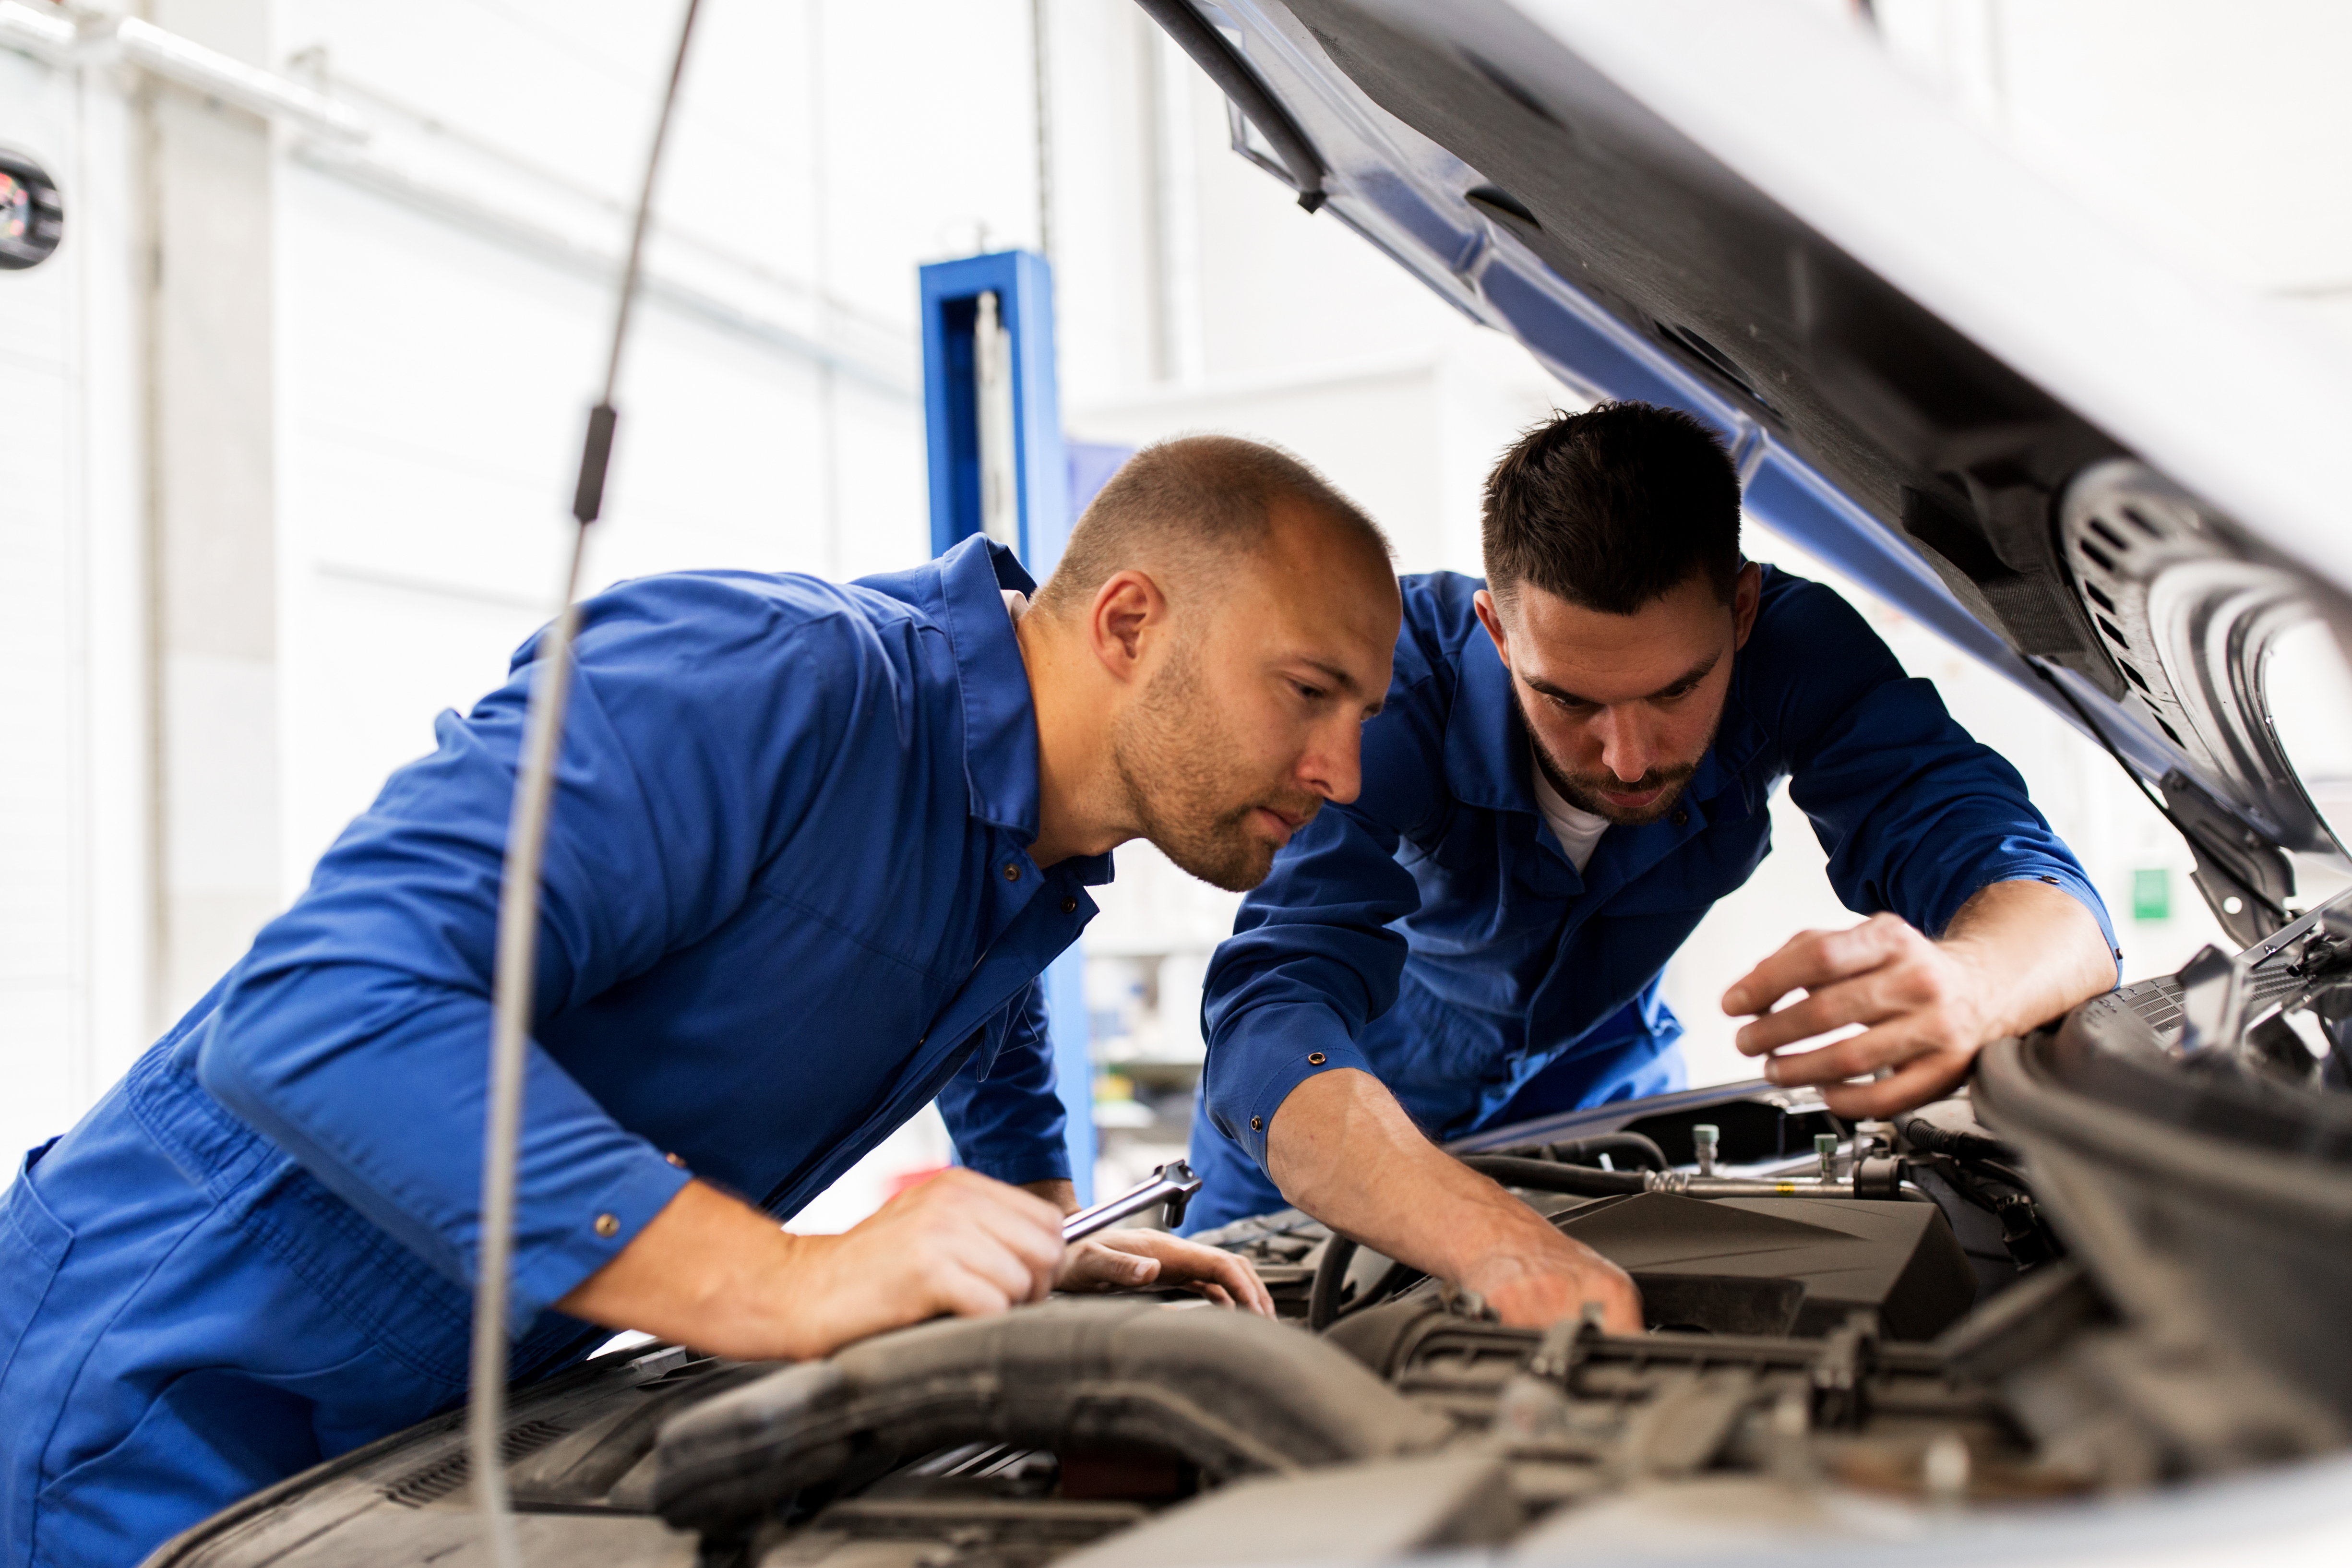 auto service, repair, maintenance and people concept - mechanic men with wrench repairing car engine